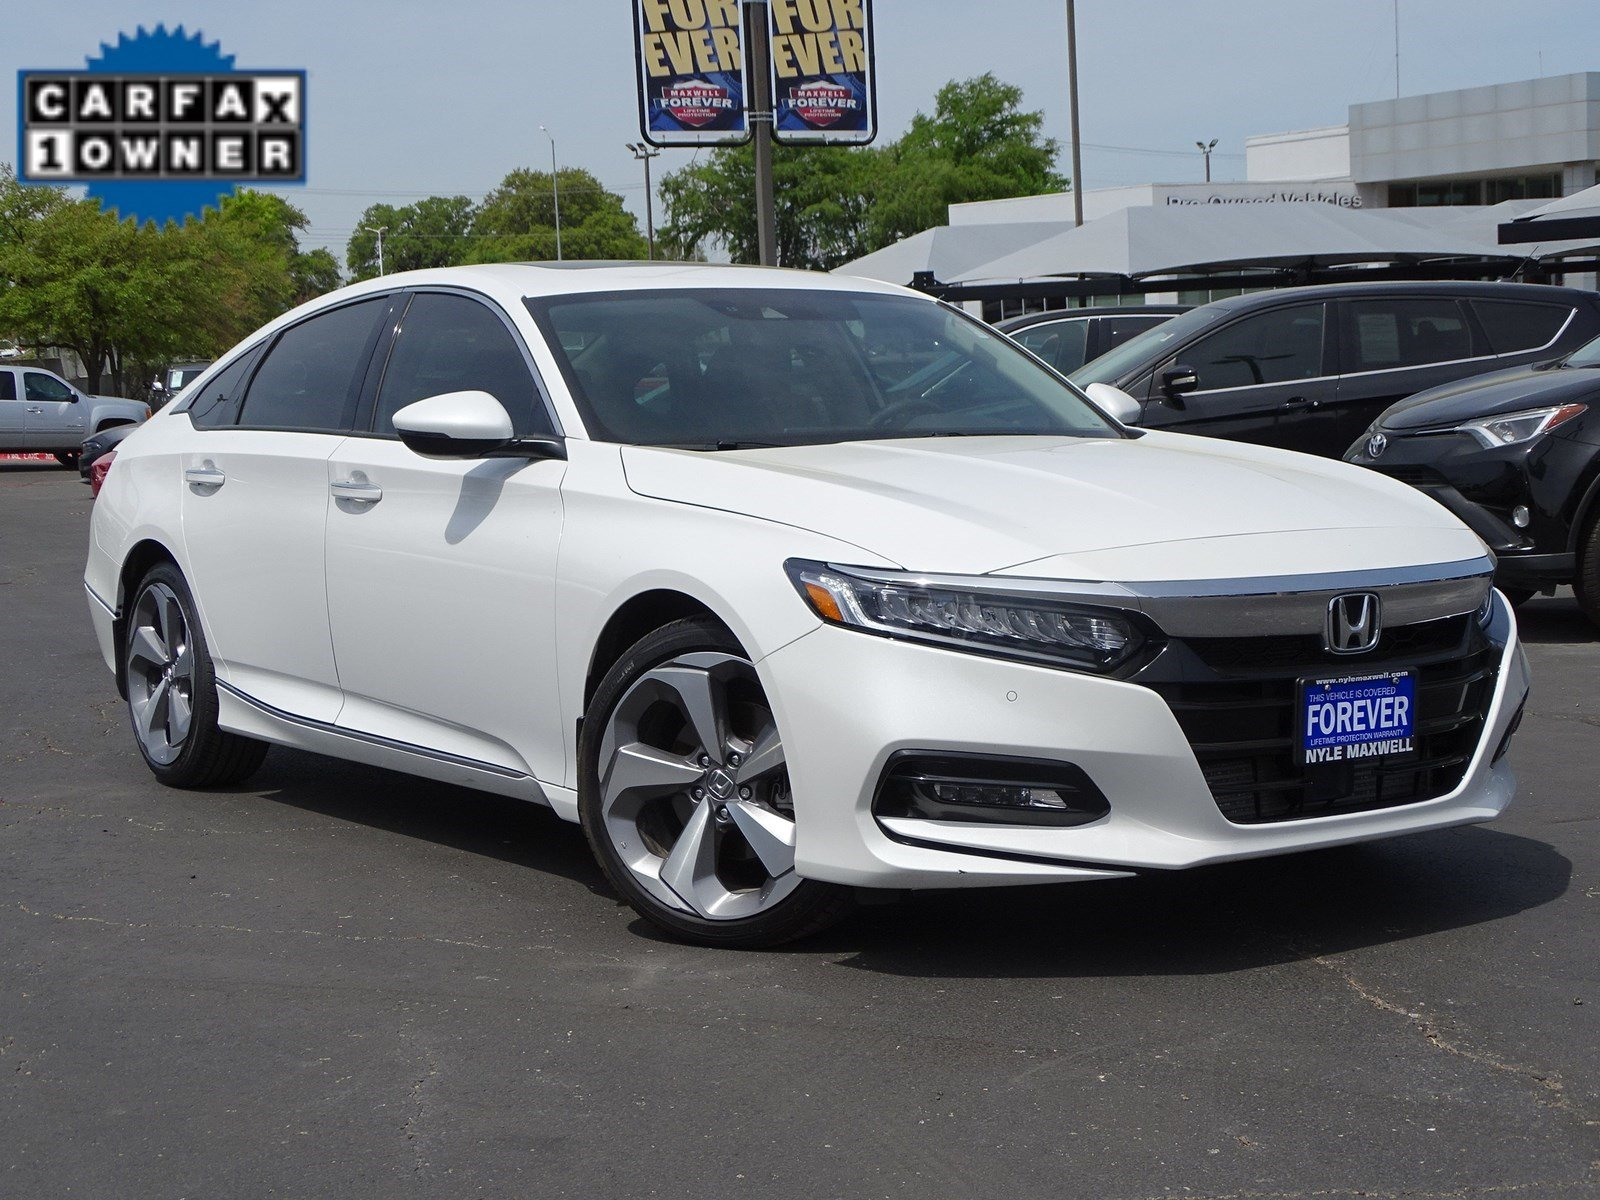 Https Www Nylemaxwellcjd Inventory Used 2018 Honda Accord Sedan Touring 2 0t Fwd 4dr Car 1hgcv2f97ja042792